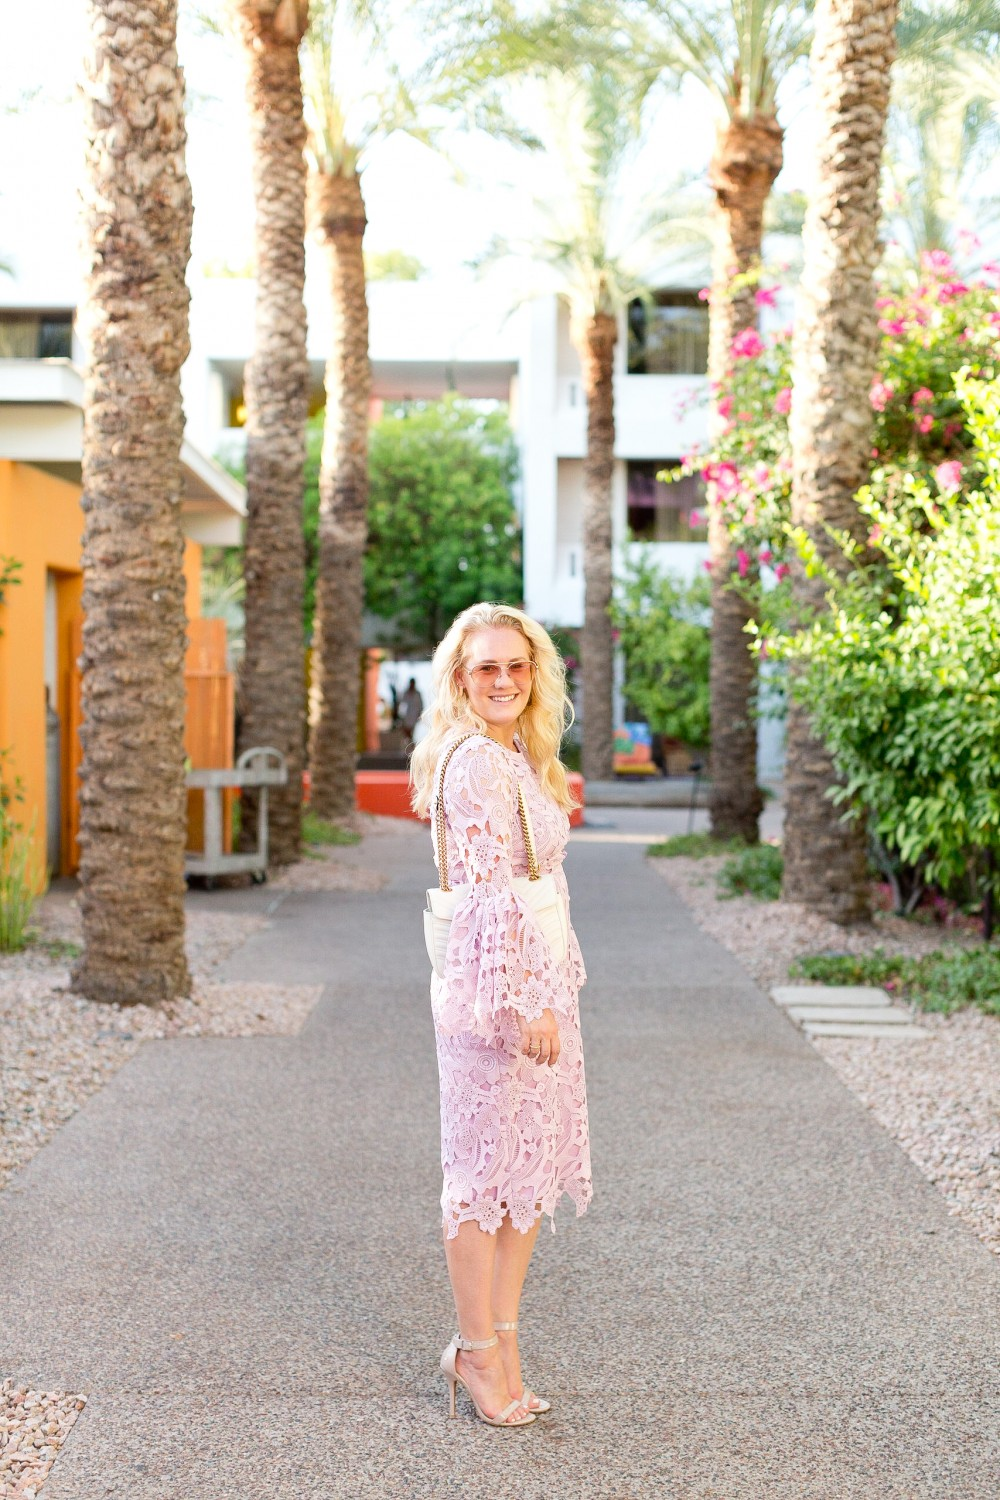 Wedding Guest Ready in the Perfect Lilac Lace Dress - Have Need Want